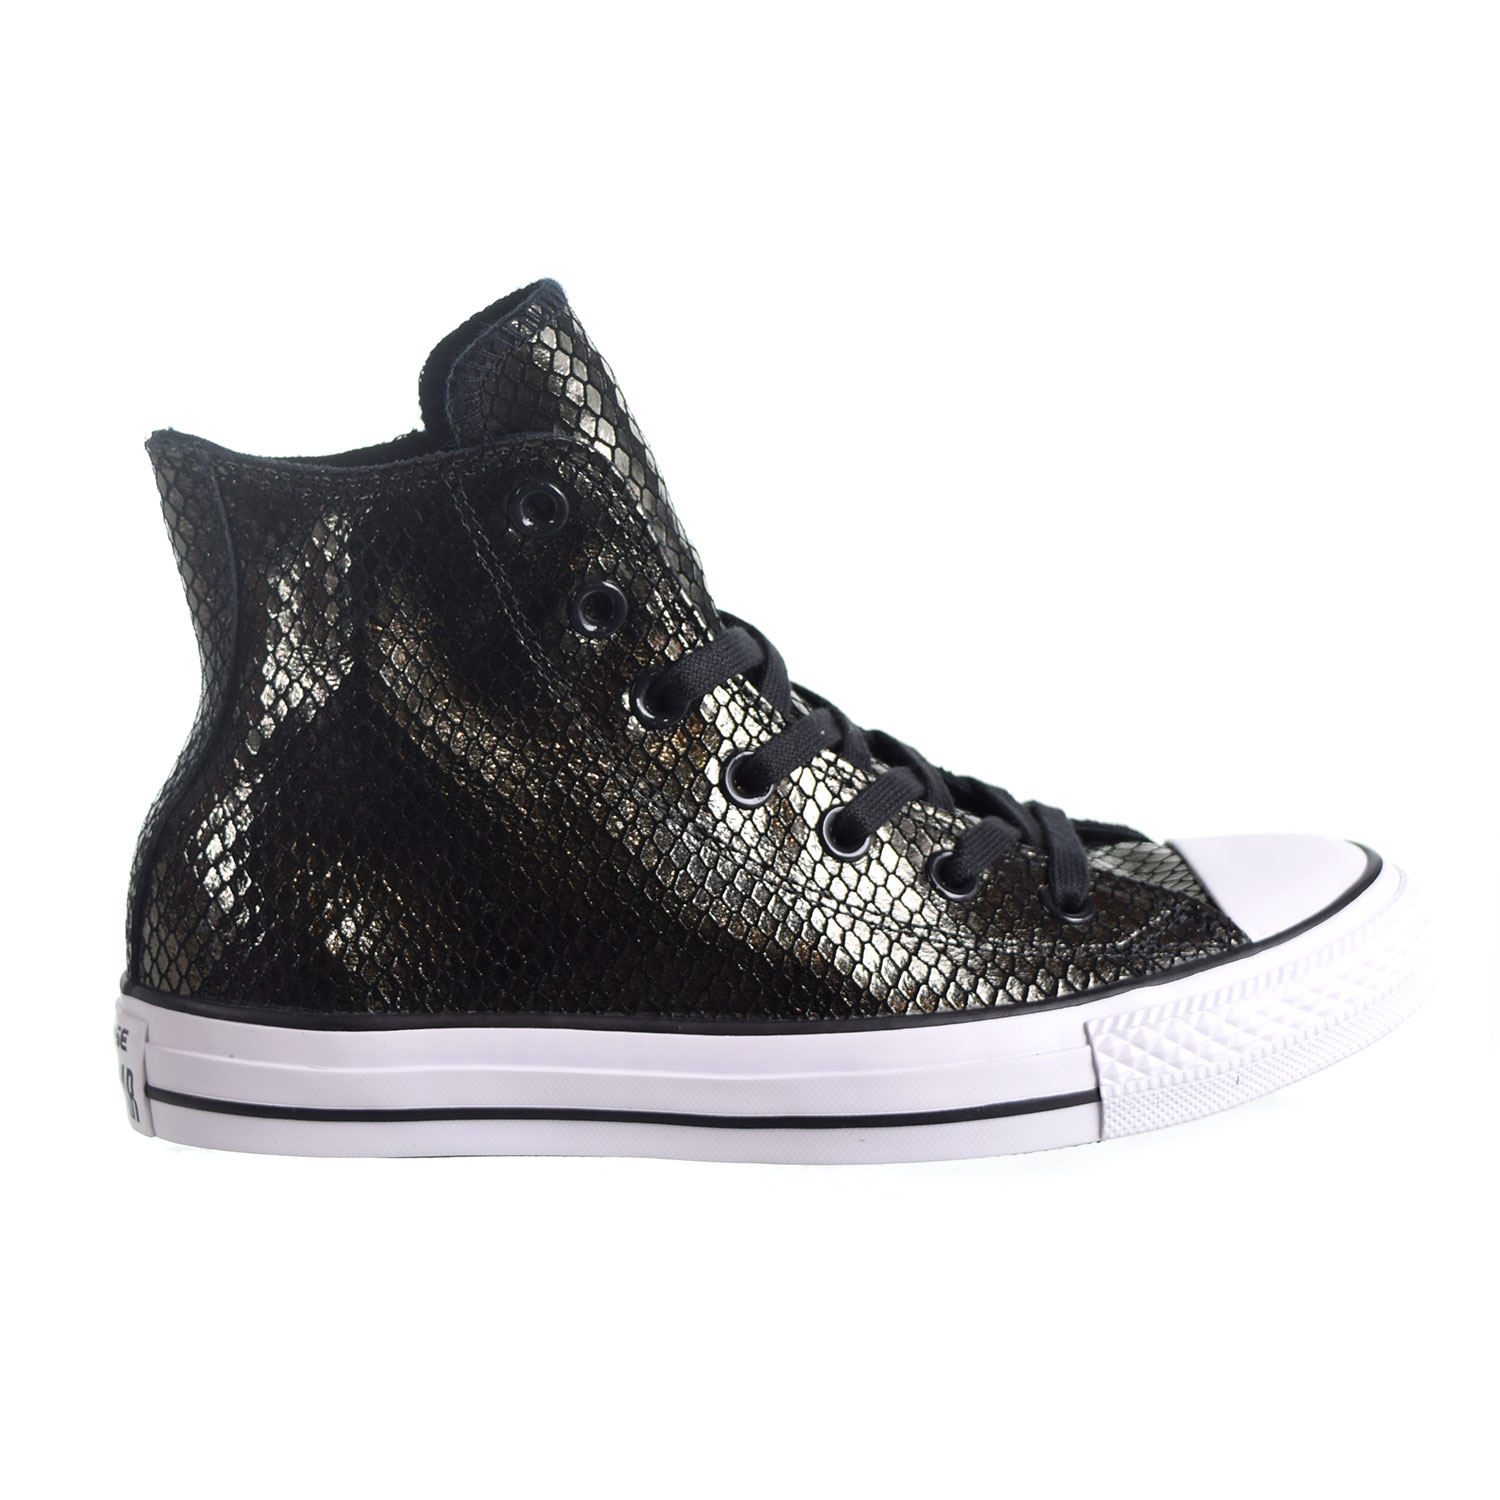 Converse Chuck Taylor All Star Hi Women S Shoes Mettalic